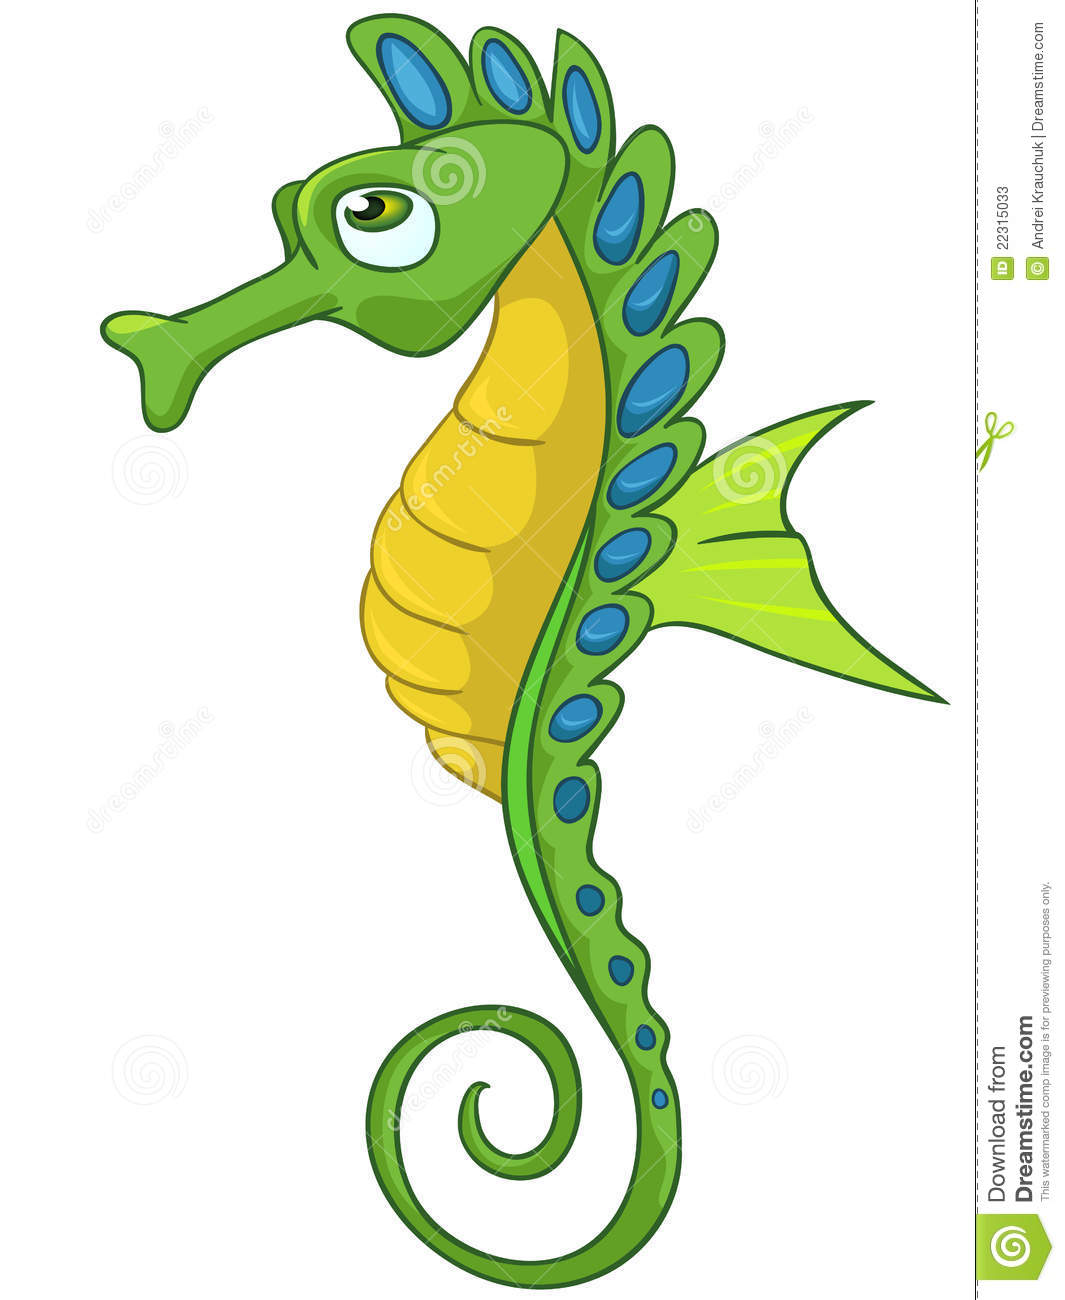 Seahorse clipart #10, Download drawings